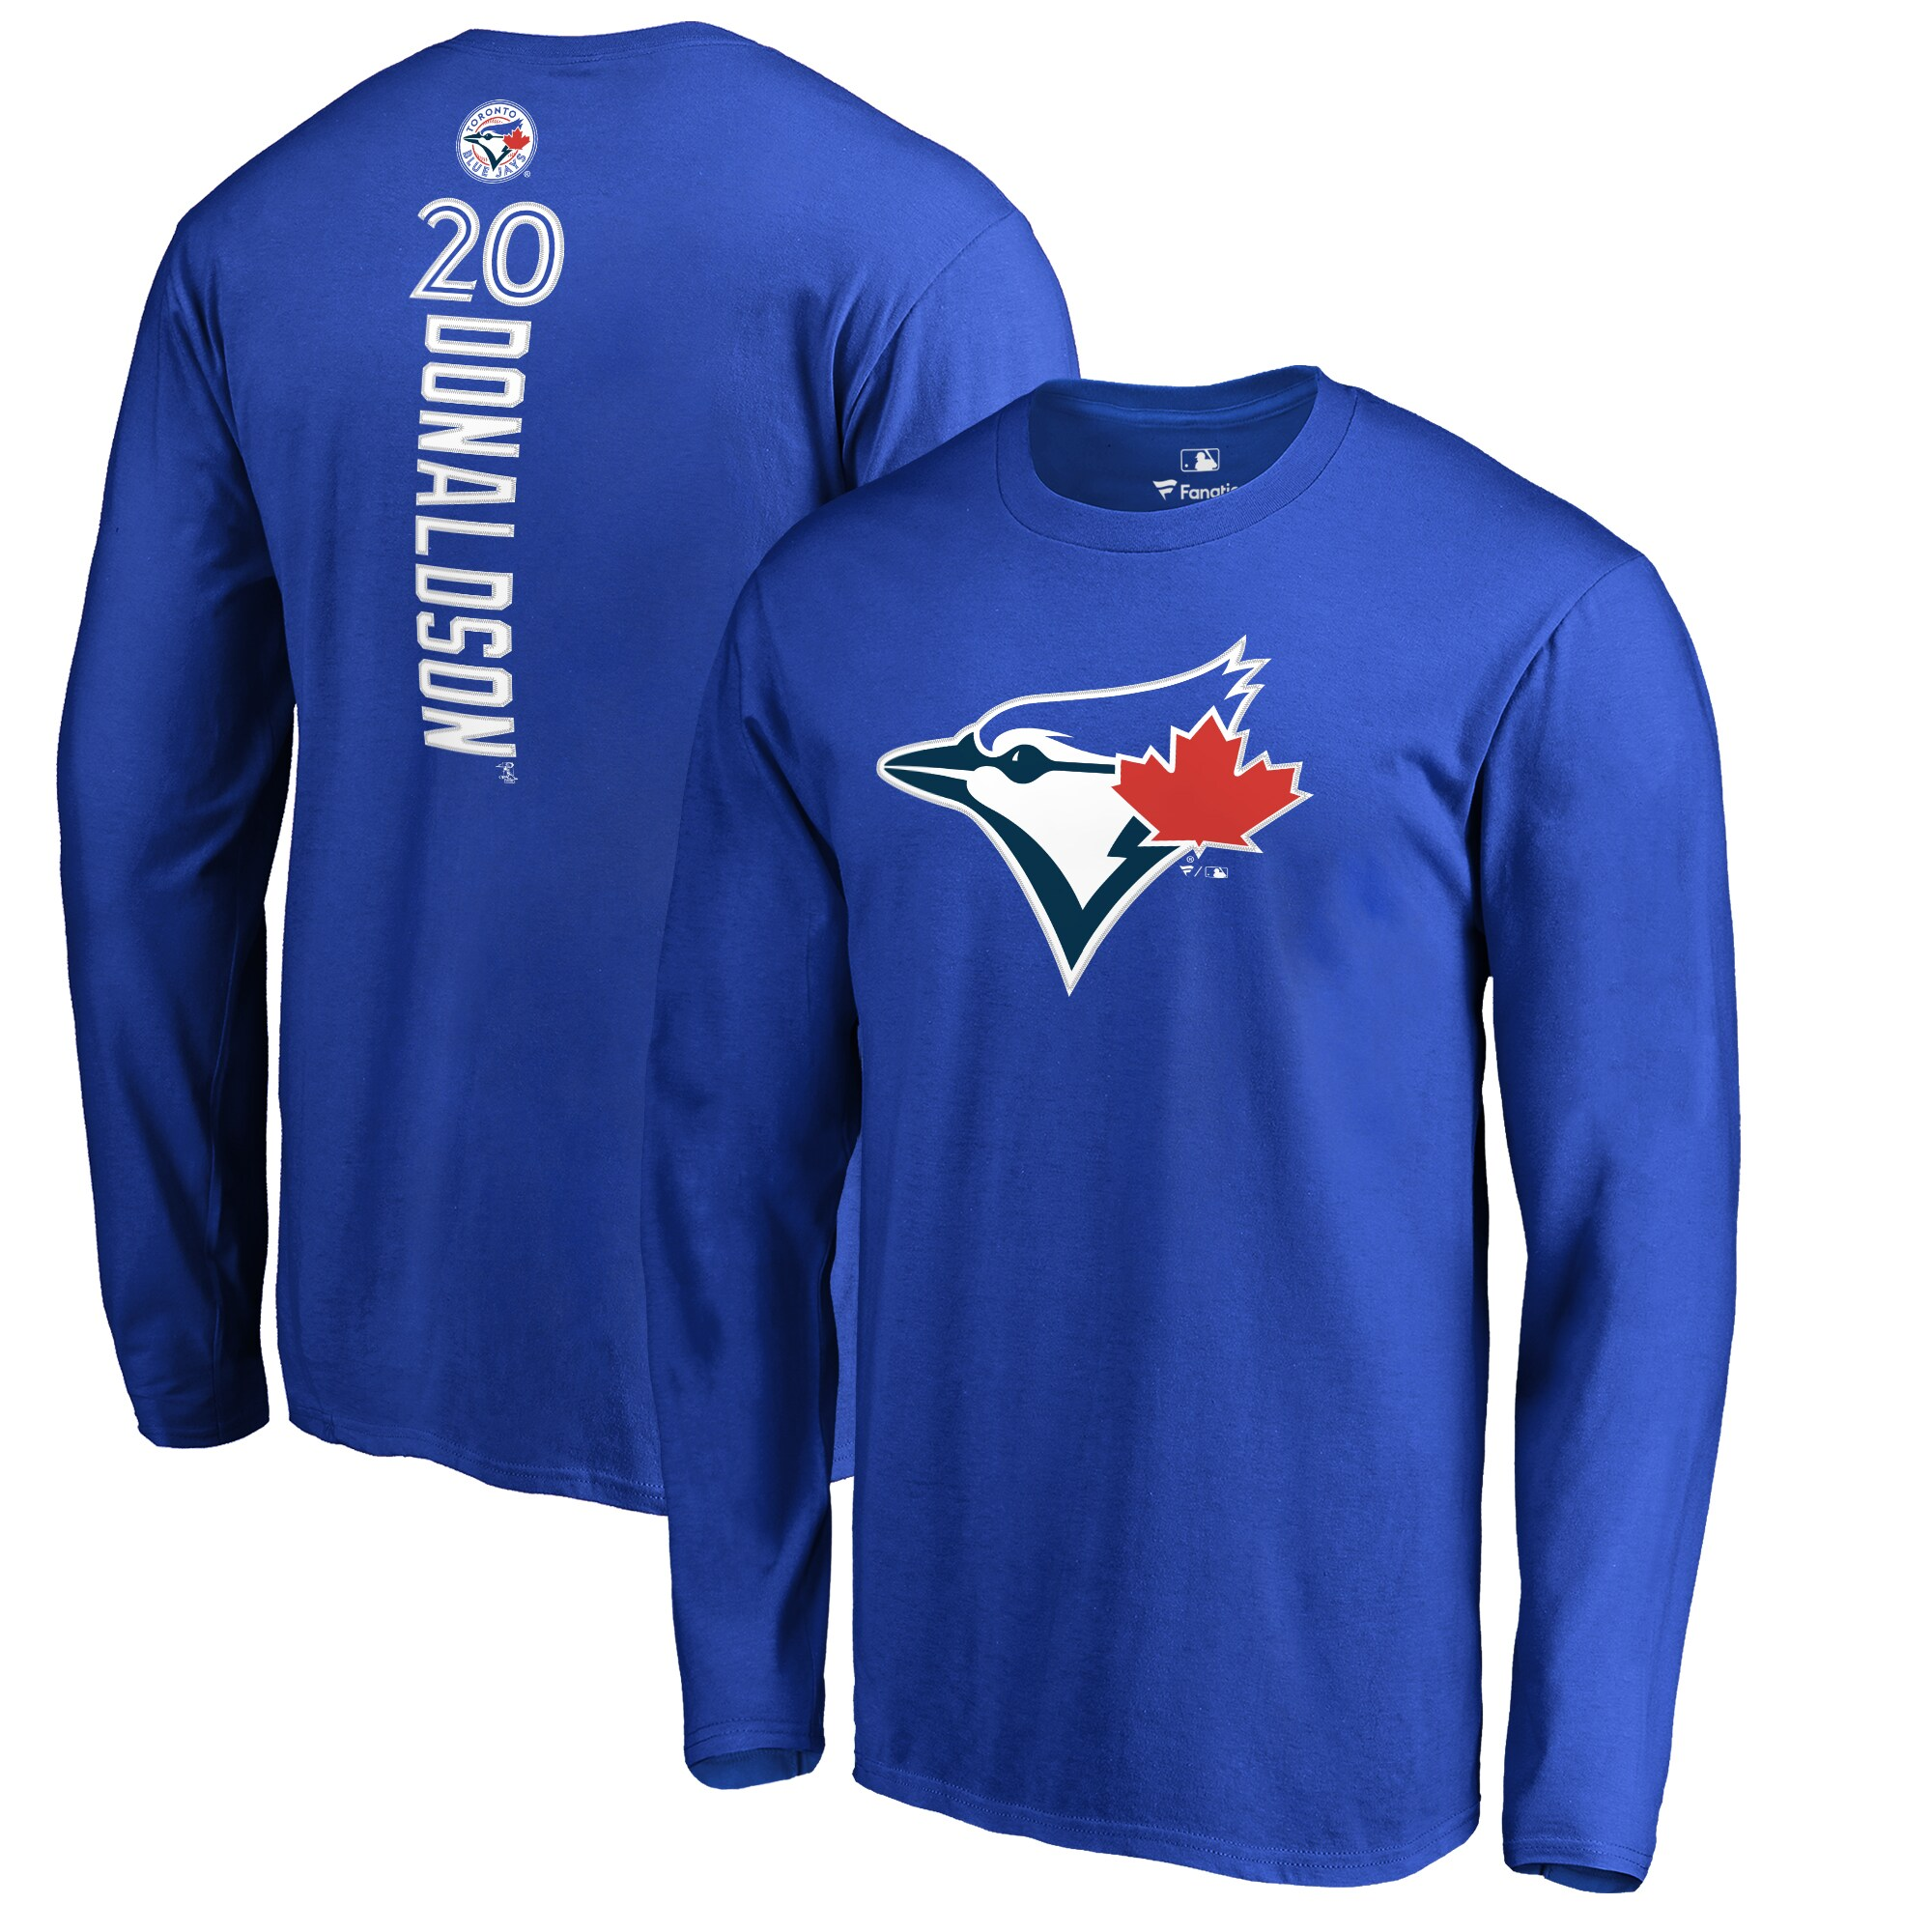 Josh Donaldson Toronto Blue Jays Backer Name & Number Long Sleeve T-Shirt - Royal